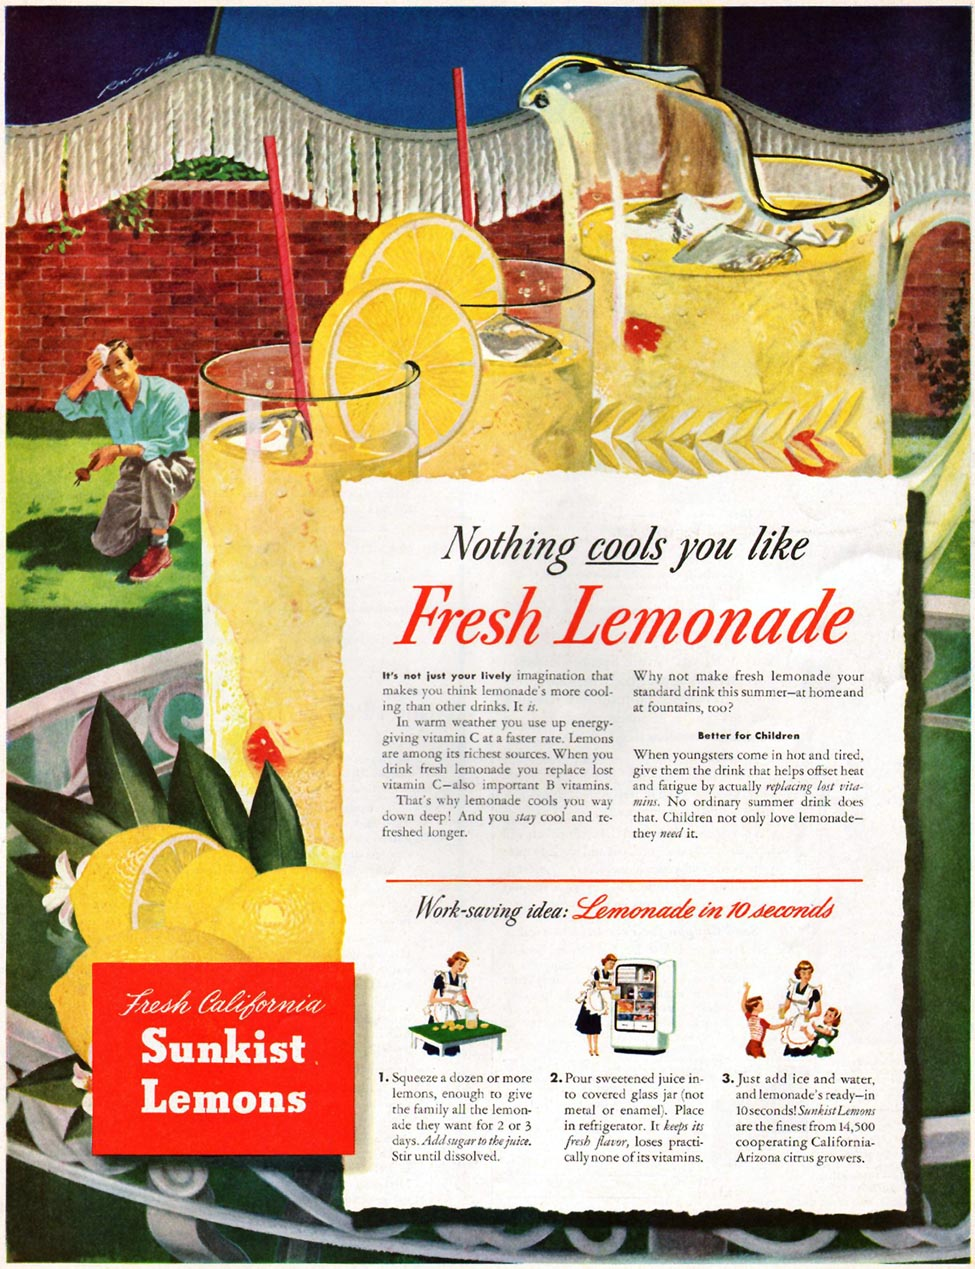 SUNKIST CALIFORNIA LEMONS LADIES' HOME JOURNAL 07/01/1949 p. 109